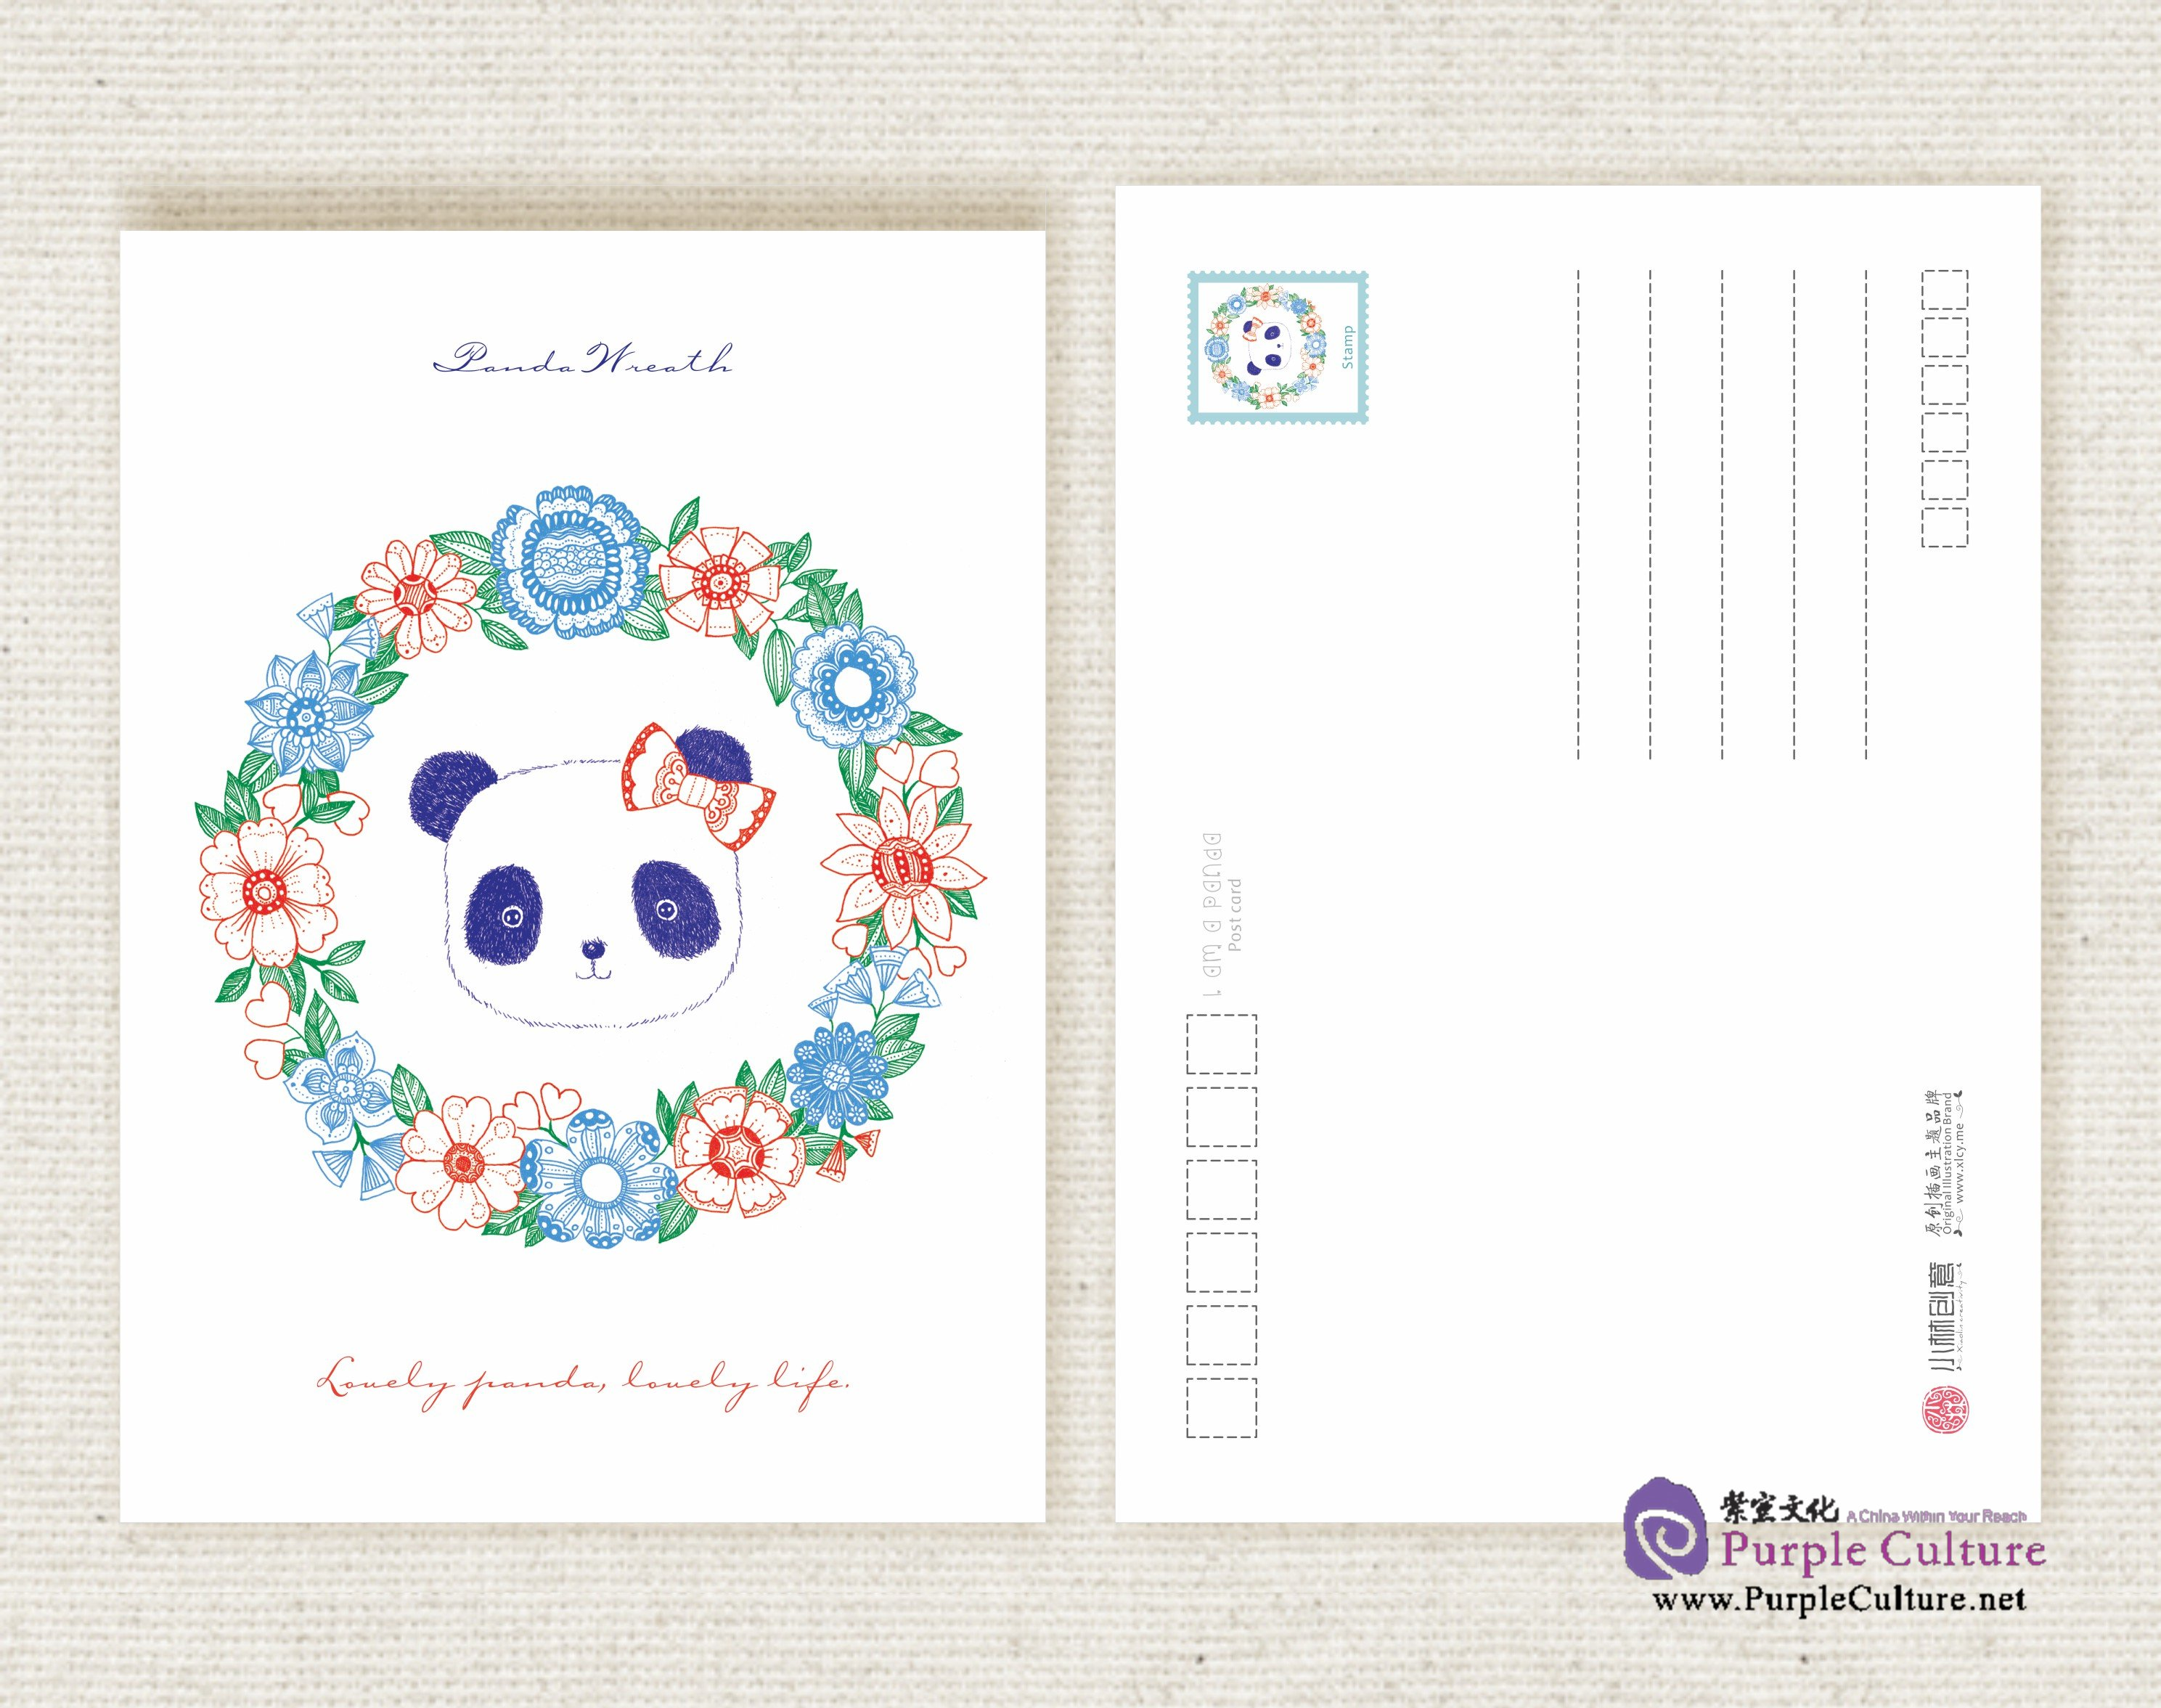 Sample pages of Hand-Painted Postcards: I am a Panda (6 pieces)